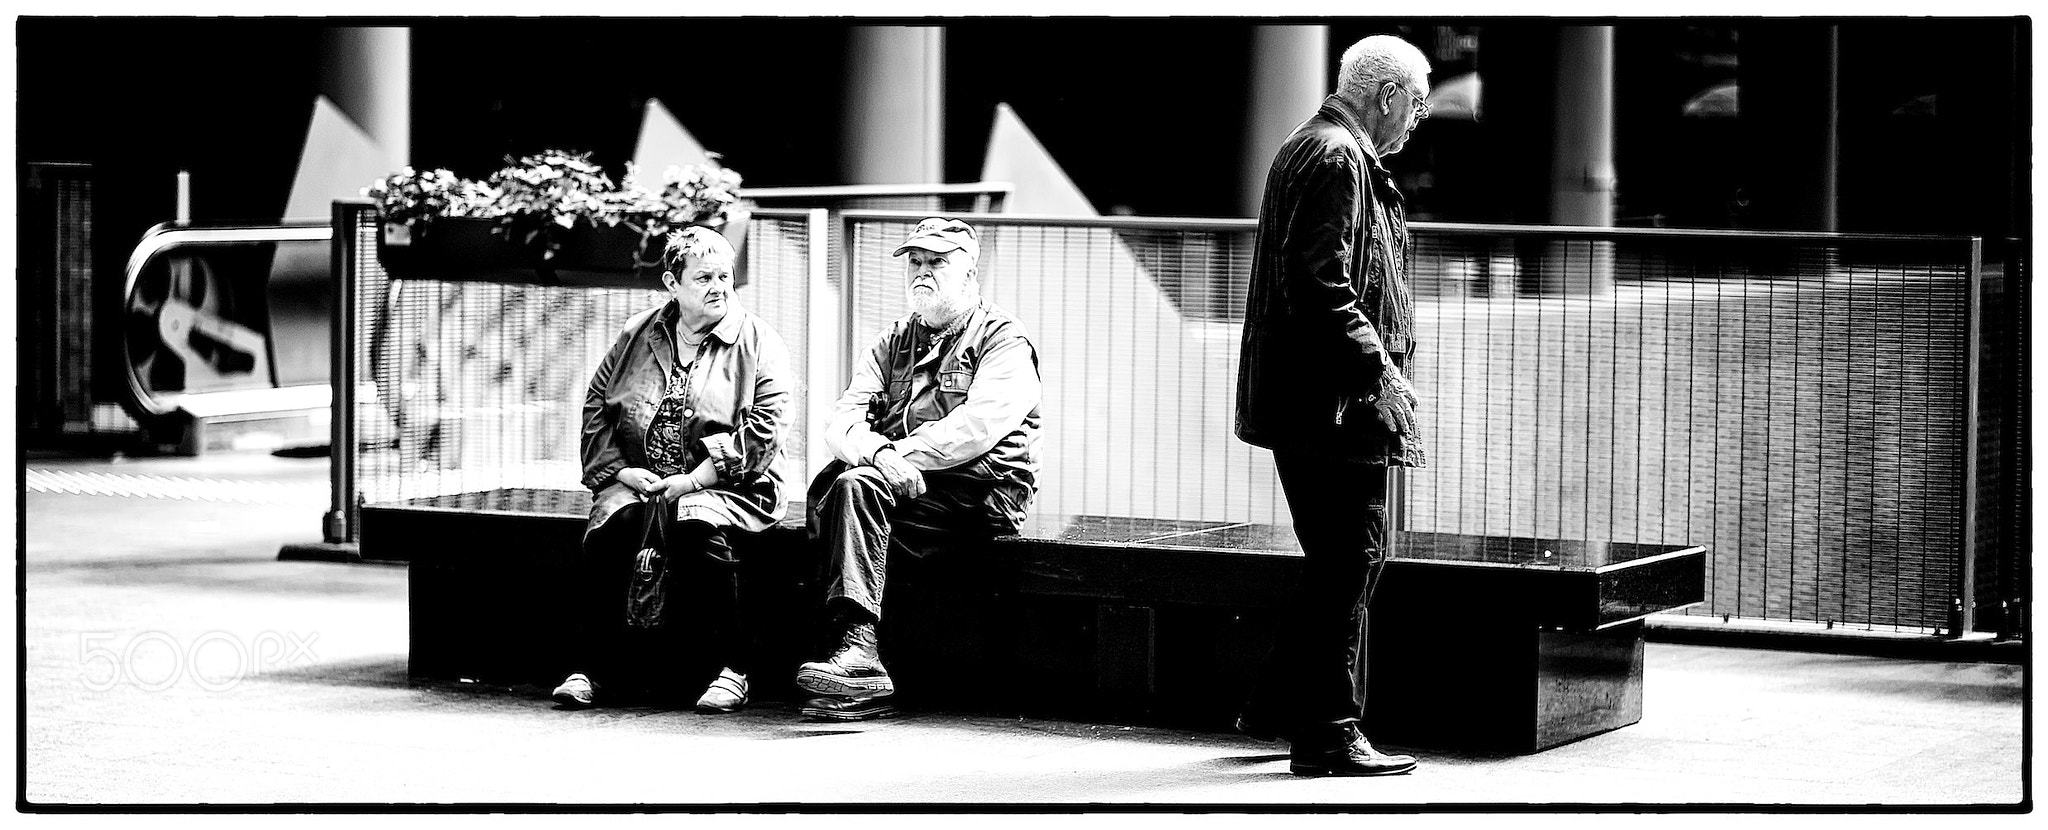 Photograph Waiting for Godot by Fouquier  on 500px